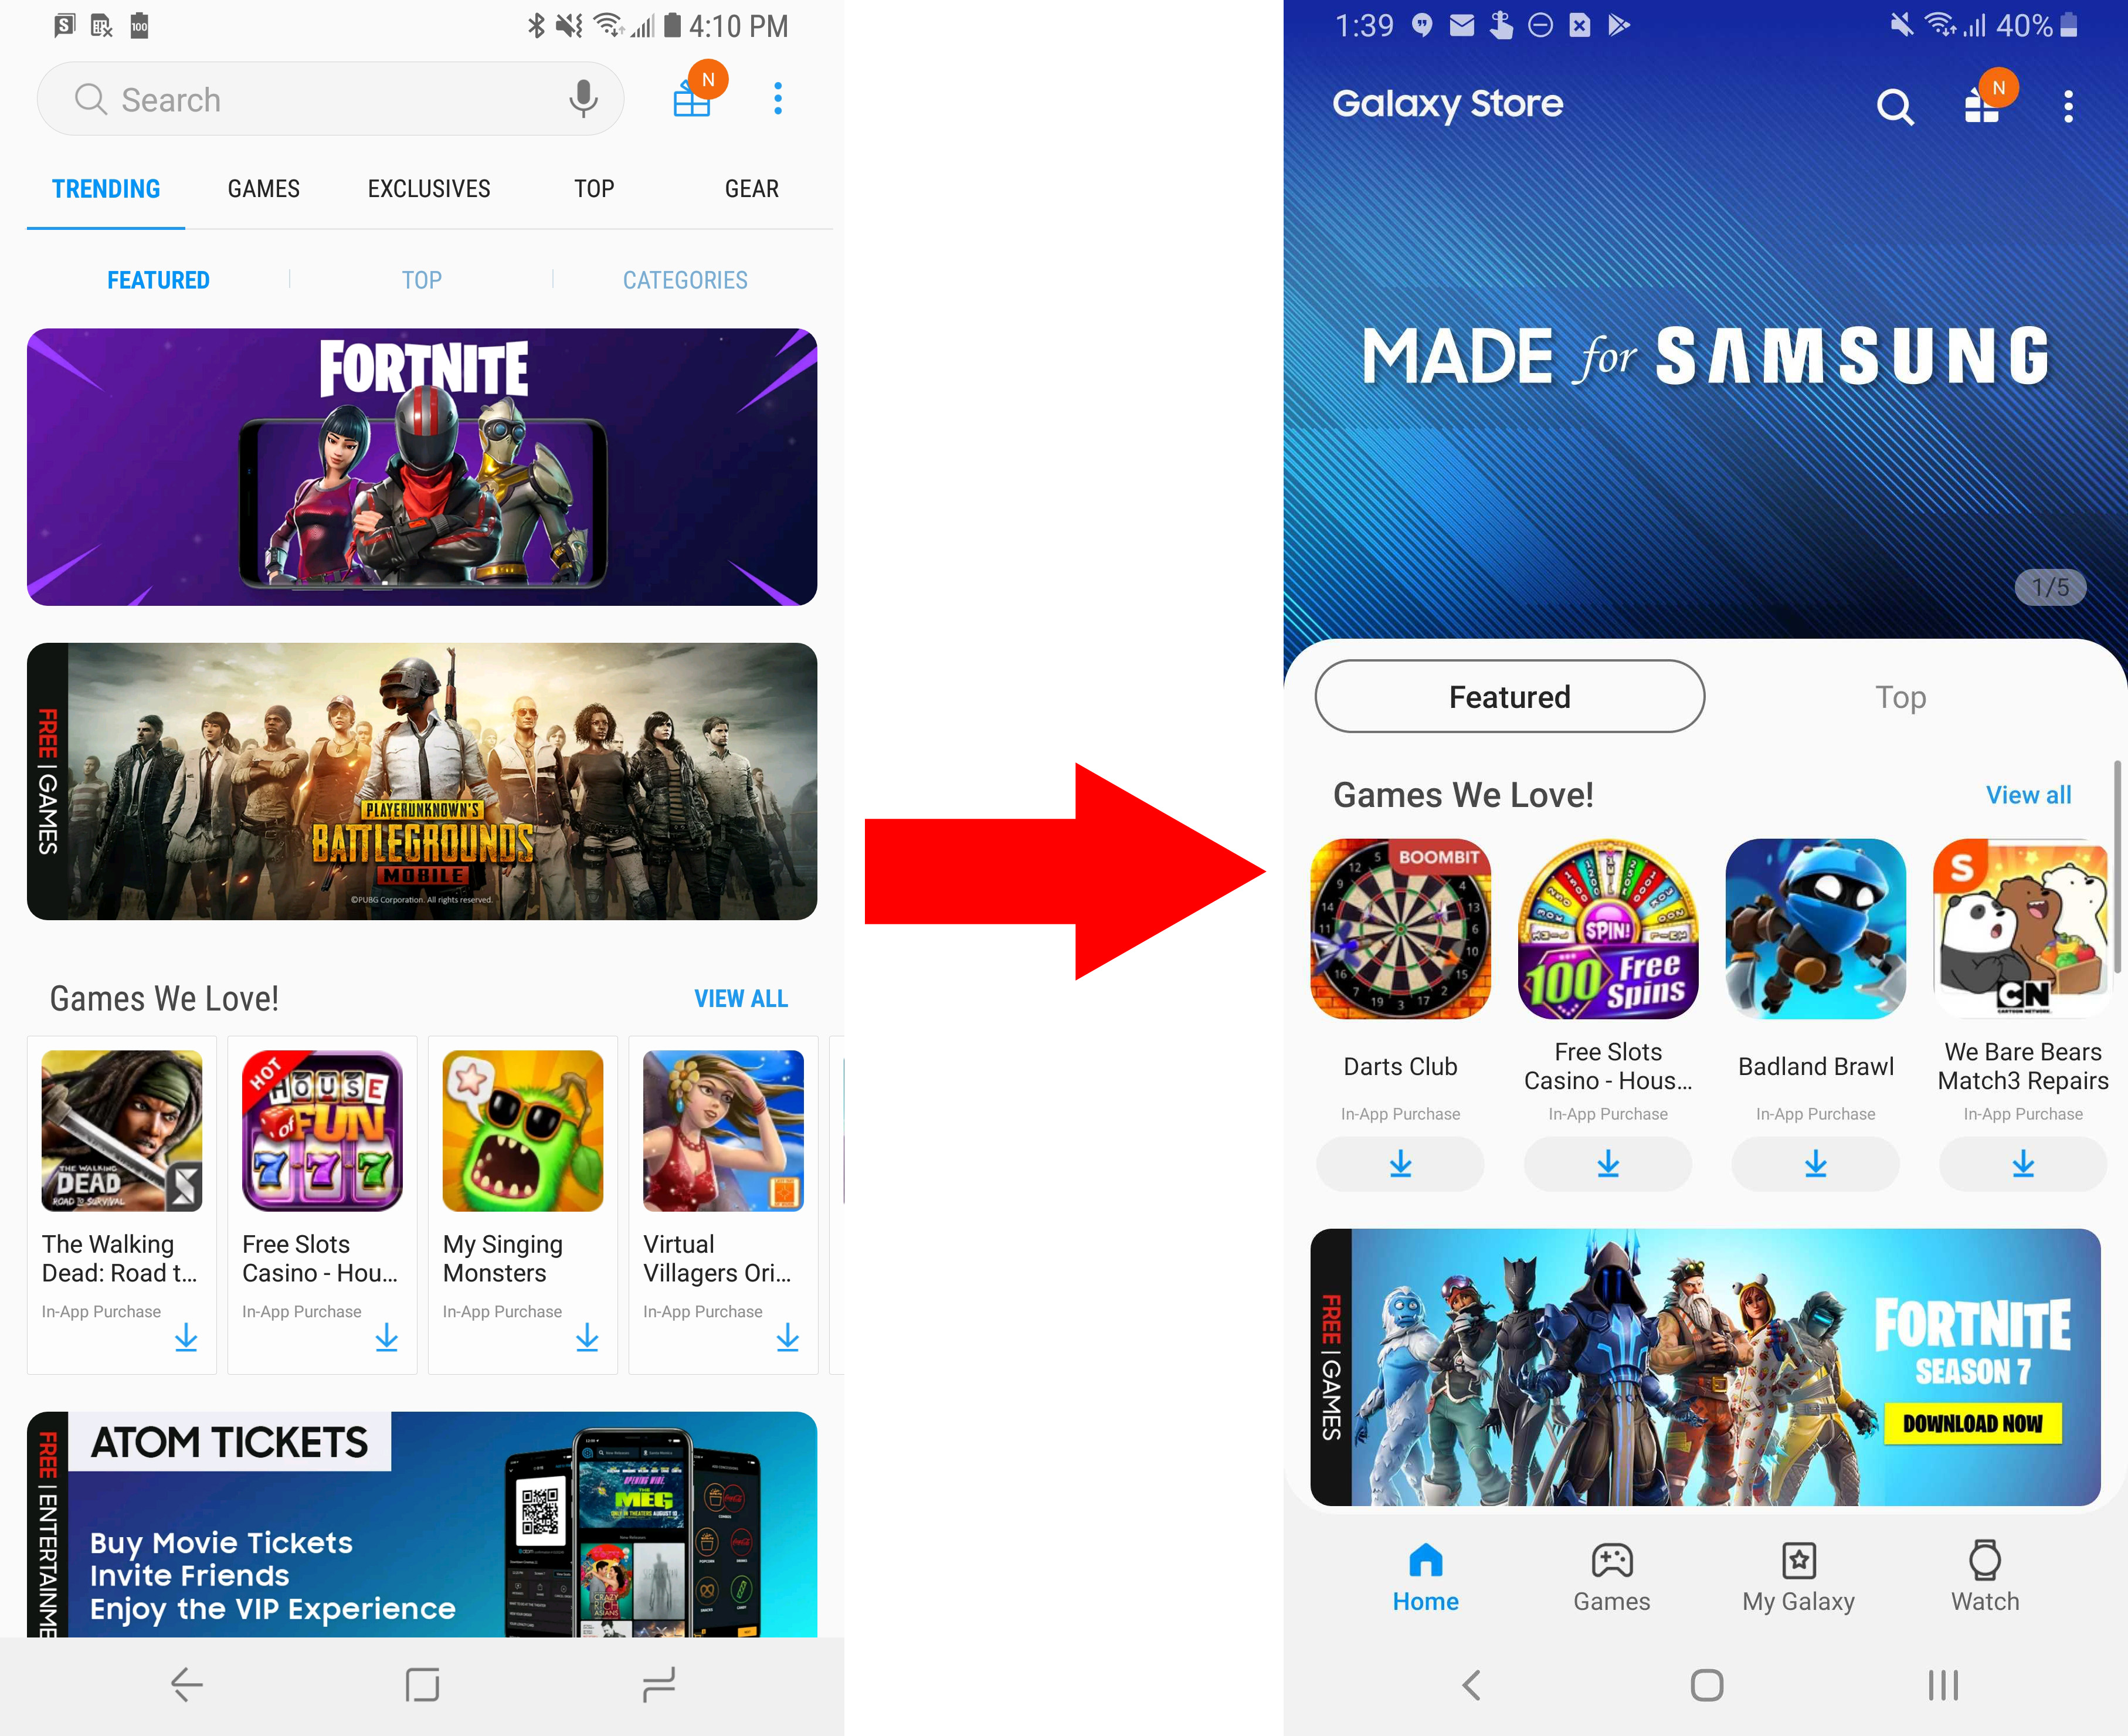 Samsung updates Galaxy Apps with OneUI, changes name to